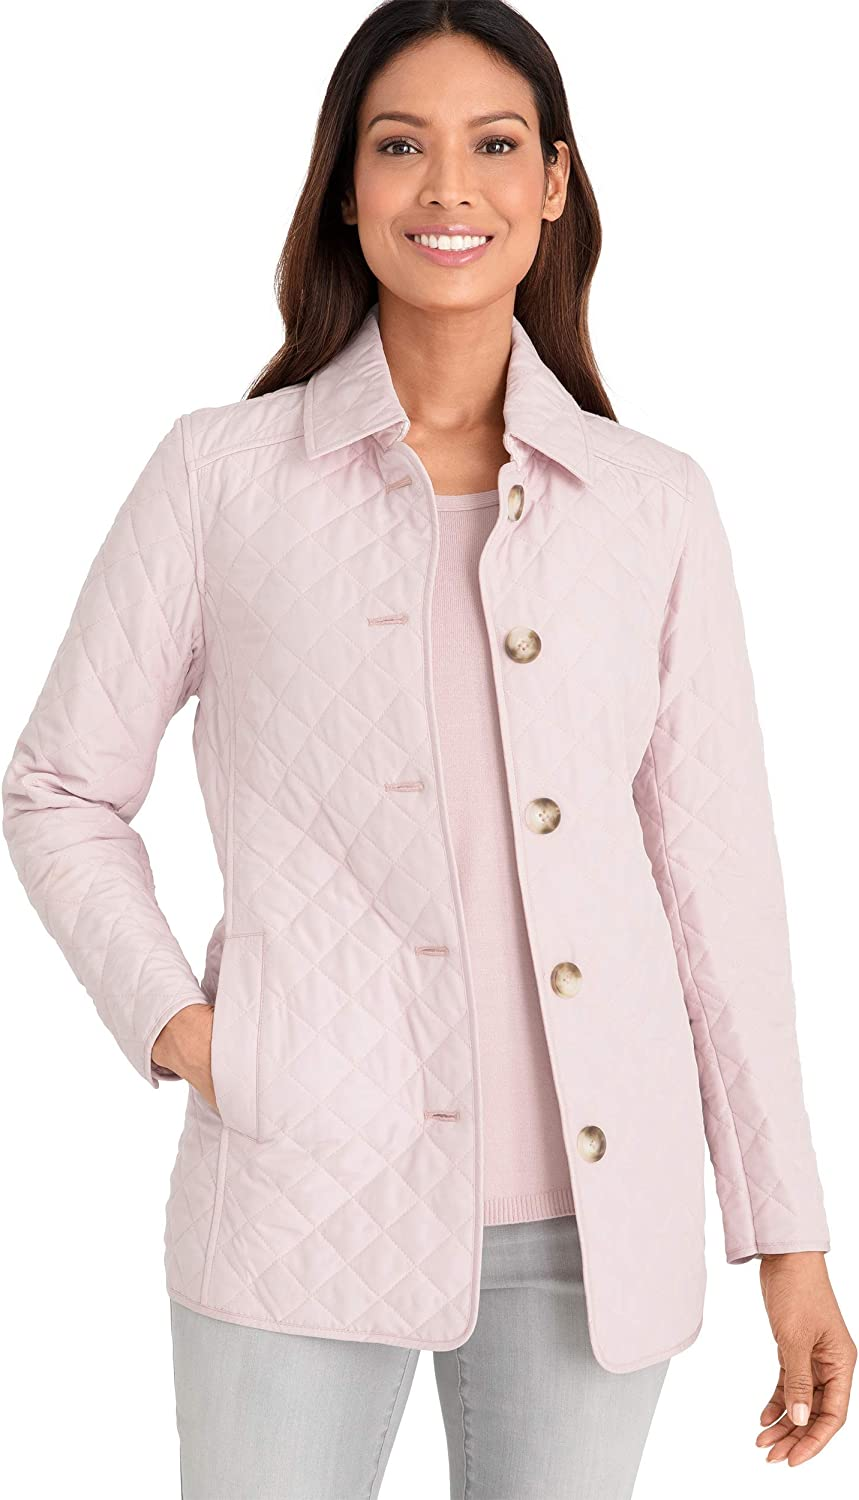 Chico's Women's Quilted Pointed Collar Classic Fit Button-Up Lightweight Jacket